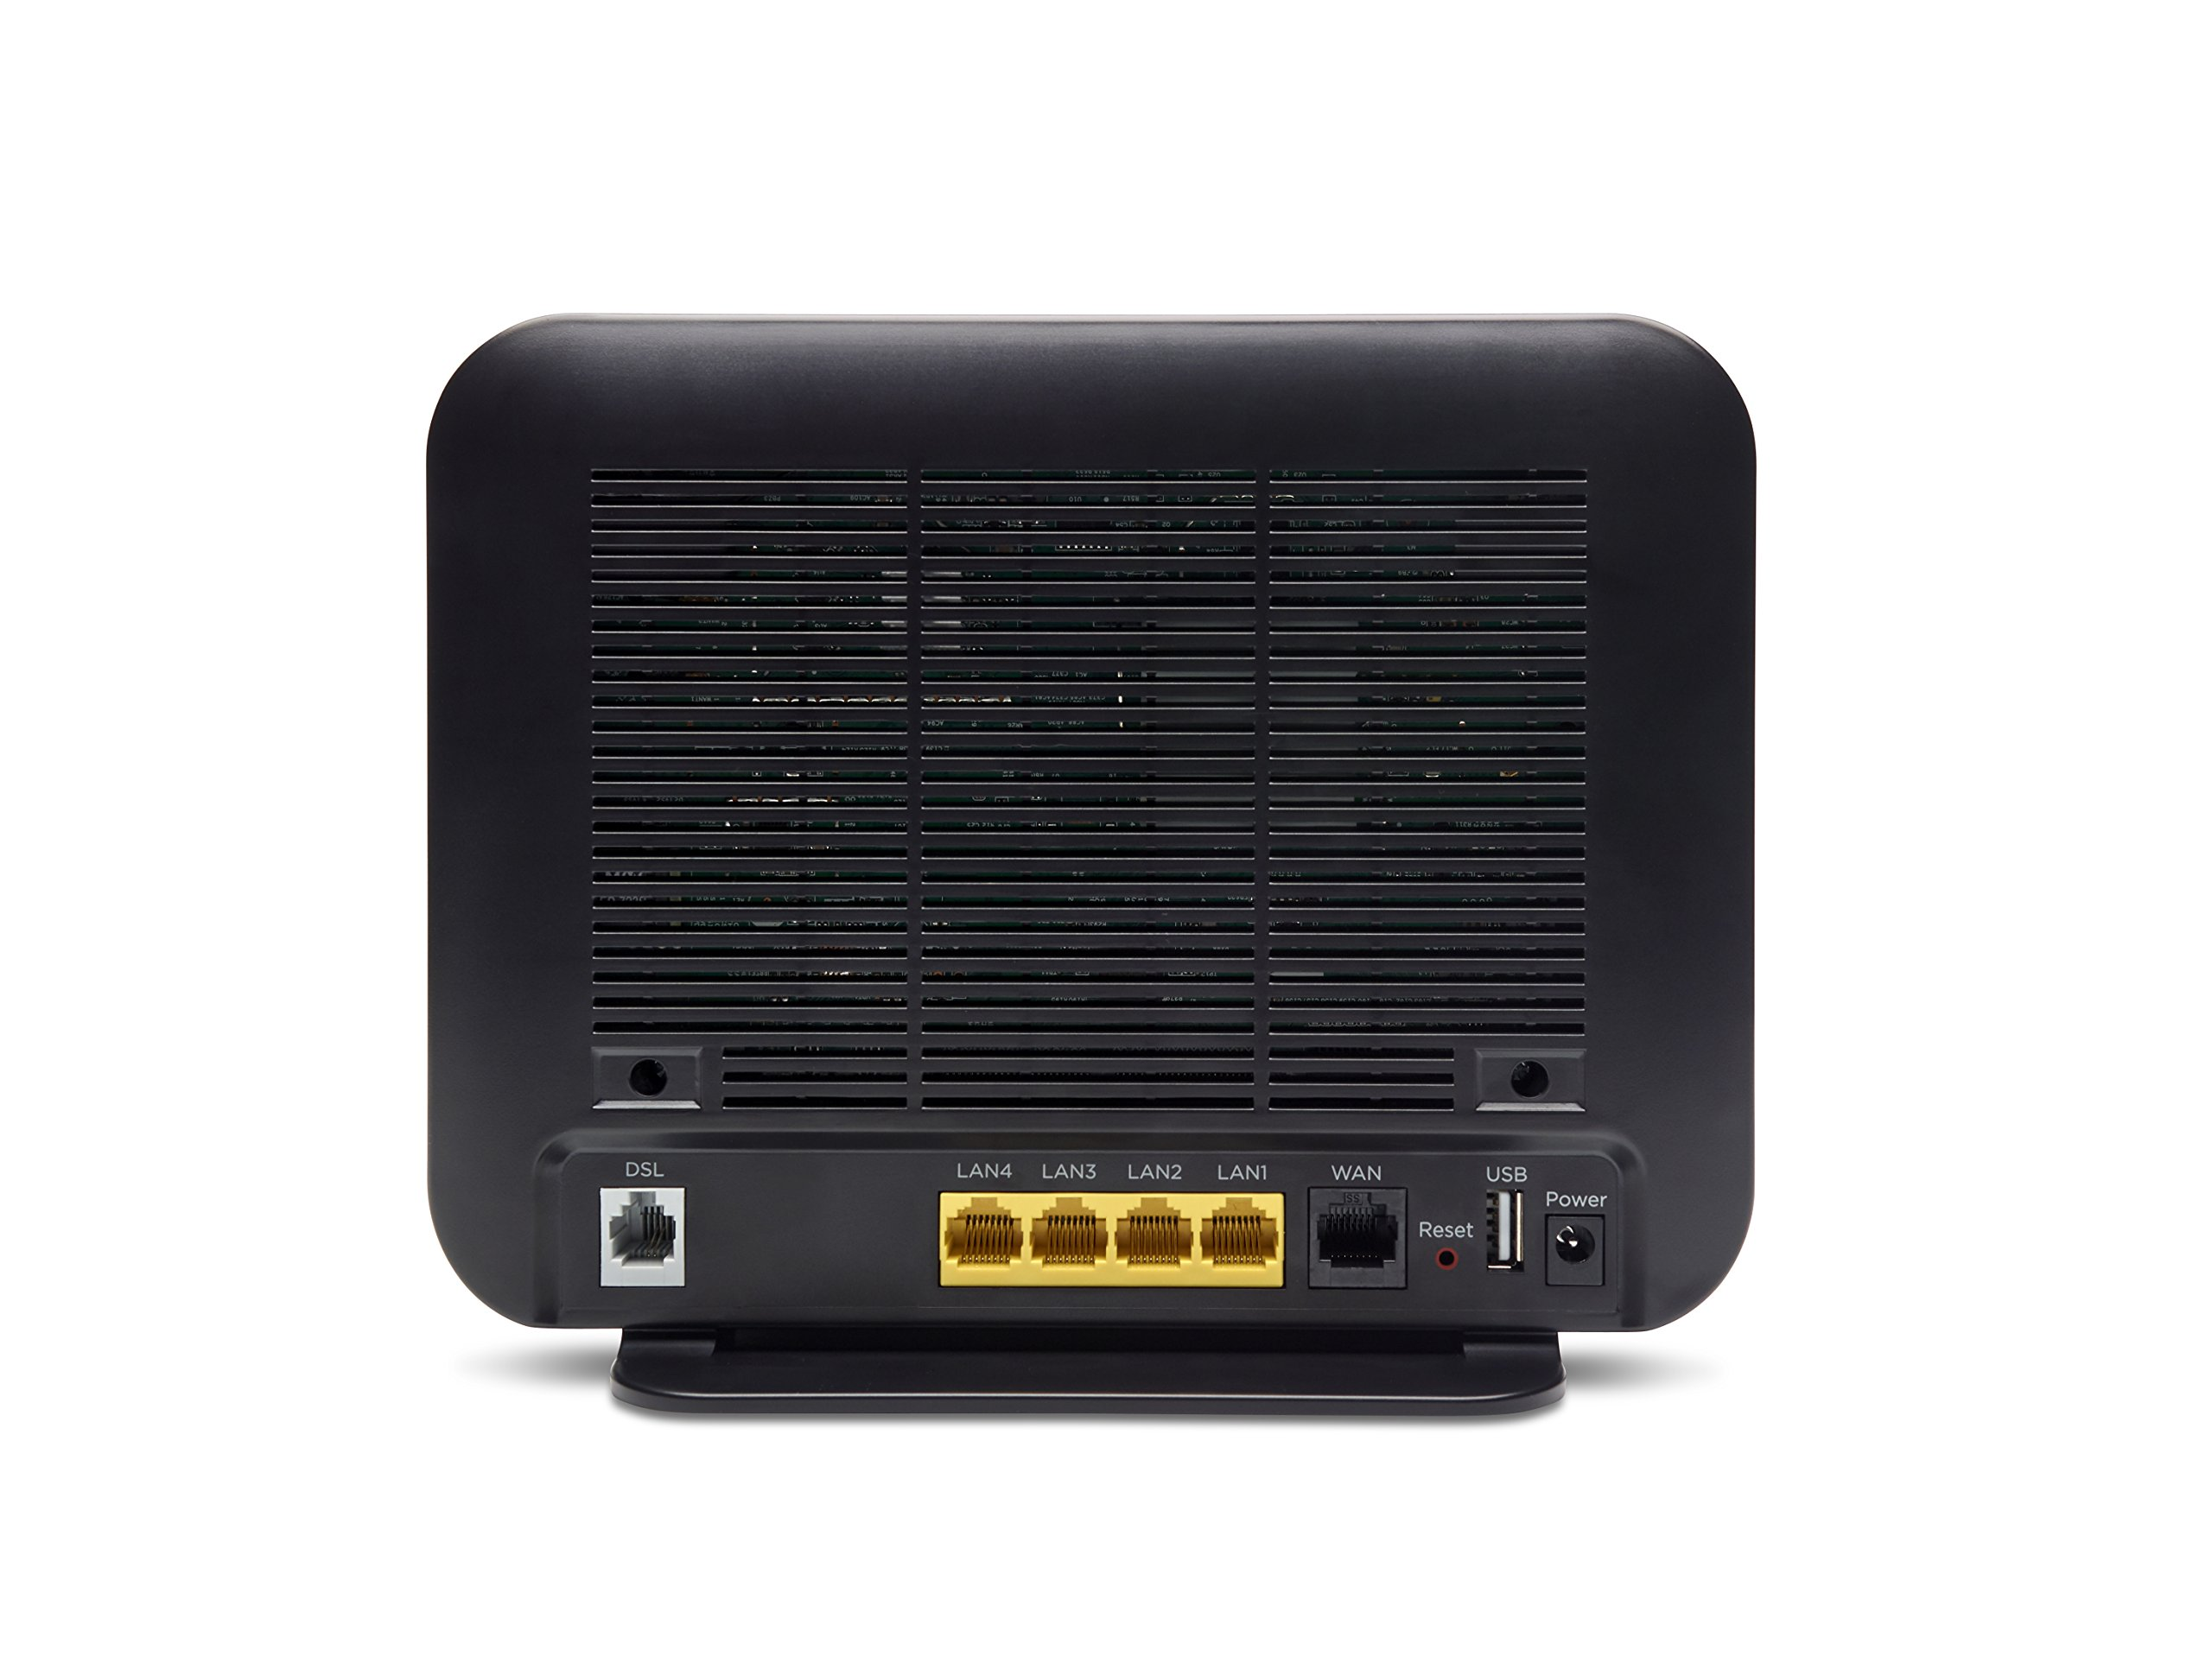 MOTOROLA VDSL2/ADSL2+ Modem + WiFi AC1600 Gigabit Router, Model MD1600, for Non-Bonded, Non-Vectoring DSL from CenturyLink, Frontier, and Some Other DSL Providers 2 IMPORTANT: MODEL MD1600 DOES NOT WORK WITH BONDED VDSL, BONDED ADSL, OR VDSL VECTORING. PLEASE READ THE CHECKLIST in the product images on this page before purchasing this product. If you're still not sure whether you have the right type of DSL service, BE SURE TO ASK YOUR SERVICE PROVIDER BEFORE purchasing this product. MODEL MD1600 IS NEVER COMPATIBLE WITH VERIZON OR AT&T SERVICES. The MD1600 IS NEVER compatible with Comcast, Charter Spectrum, Cox, or other cable services The MD1600 is a great choice for most ADSL and VDSL services from CenturyLink, Frontier, Windstream, TDS Telecom, and Fairpoint. .It combines a VDSL2/ADSL2+ modem with a full-featured AC1600 WiFi Gigabit router to provide fast Internet to all your WiFi and Ethernet devices. DSL services use the telephone wiring in your home. Supplying your own modem typically saves $9.99 in modem rental fees for CenturyLink, and savings vary for other service providers. Built-in router includes four Gigabit Ethernet ports, AC1600 wireless, a firewall, WPA/WPA2 wireless security, IPv4 and IPv6 support, and Virtual Private Network (VPN) capability. You can plug a USB storage device into the MD1600's USB 2.0 host port for Network Attached Storage (NAS) which supports DLNA Media Sharing.